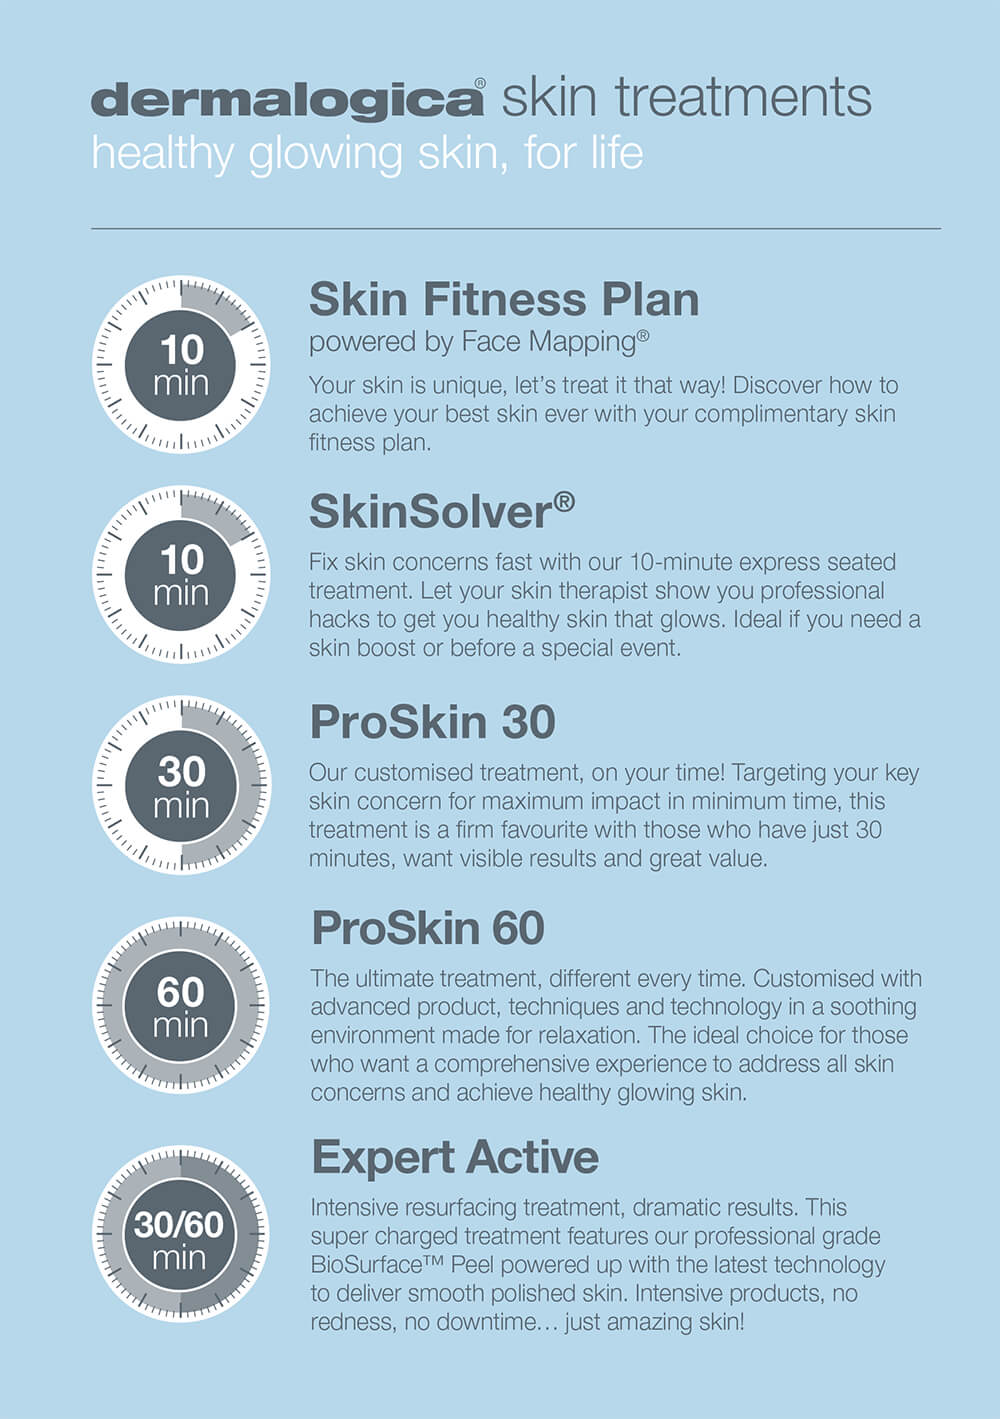 dermalogica-uk-treatment-menu-14-09-2017.jpg